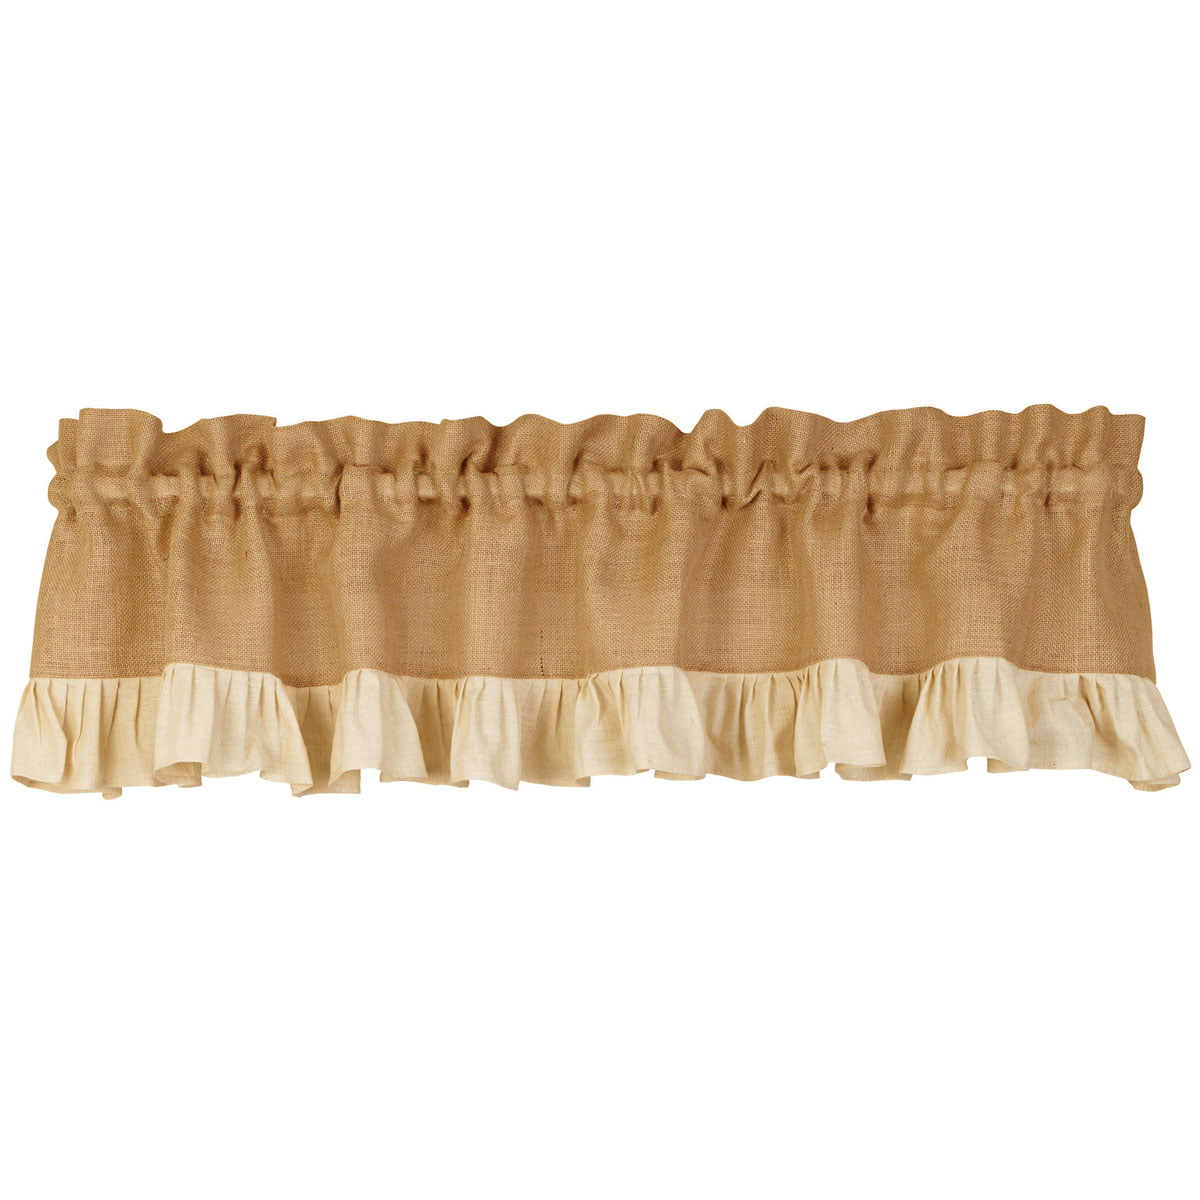 Burlap and Cream Ruffle Country Valance by The Country House Collection